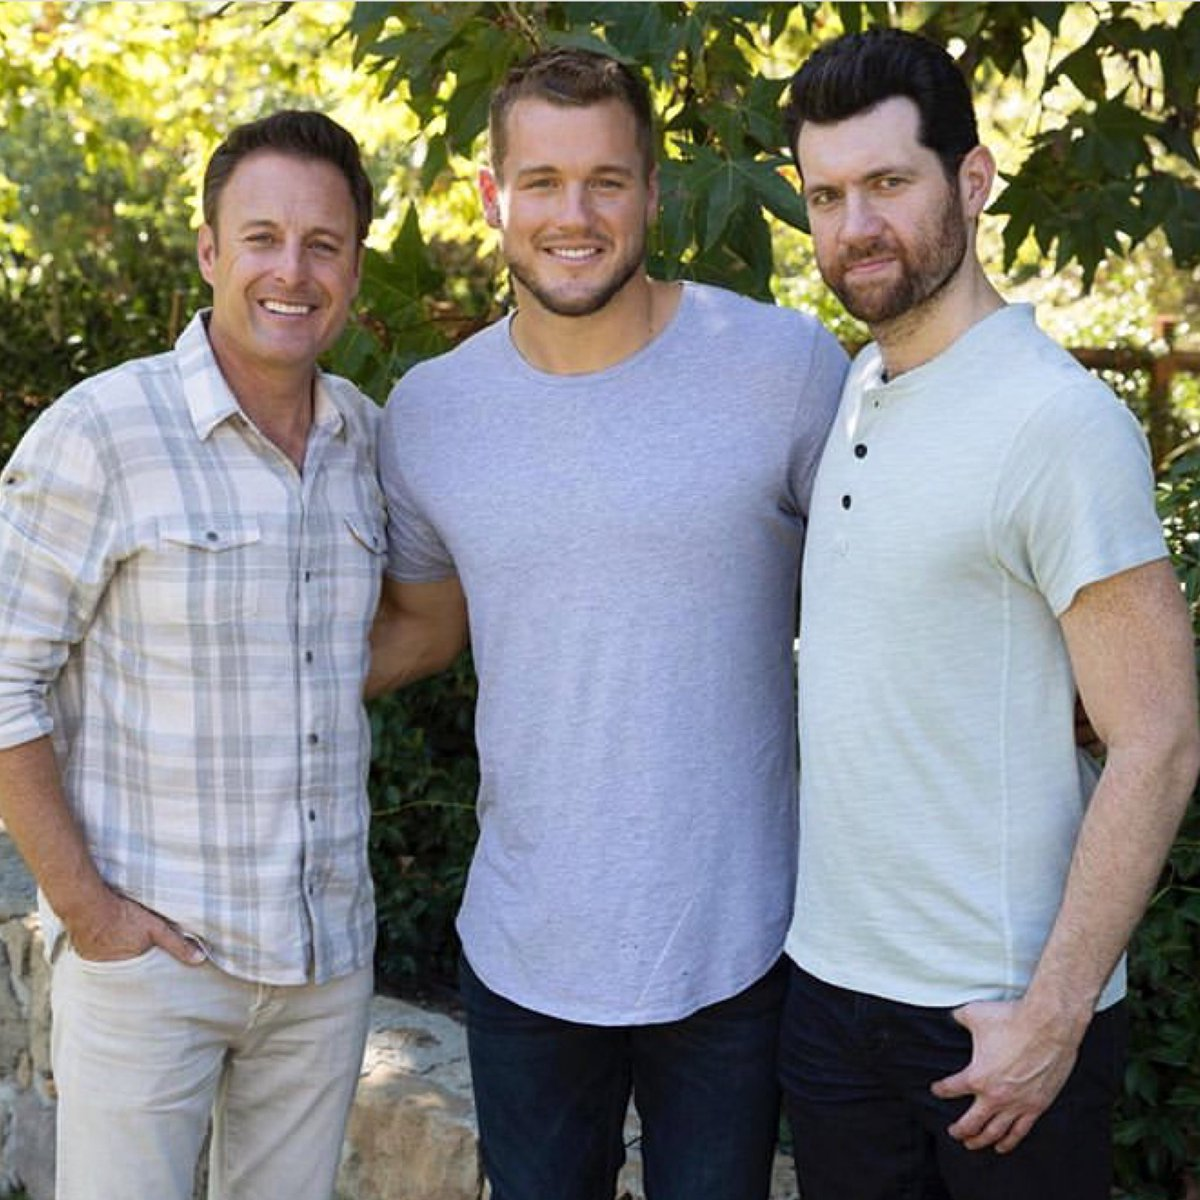 test Twitter Media - I need to tell you guys something. I am on The Bachelor tonight. Colton loses his virginity to me. I have no other comment at this time. https://t.co/0H6W0GQC8i